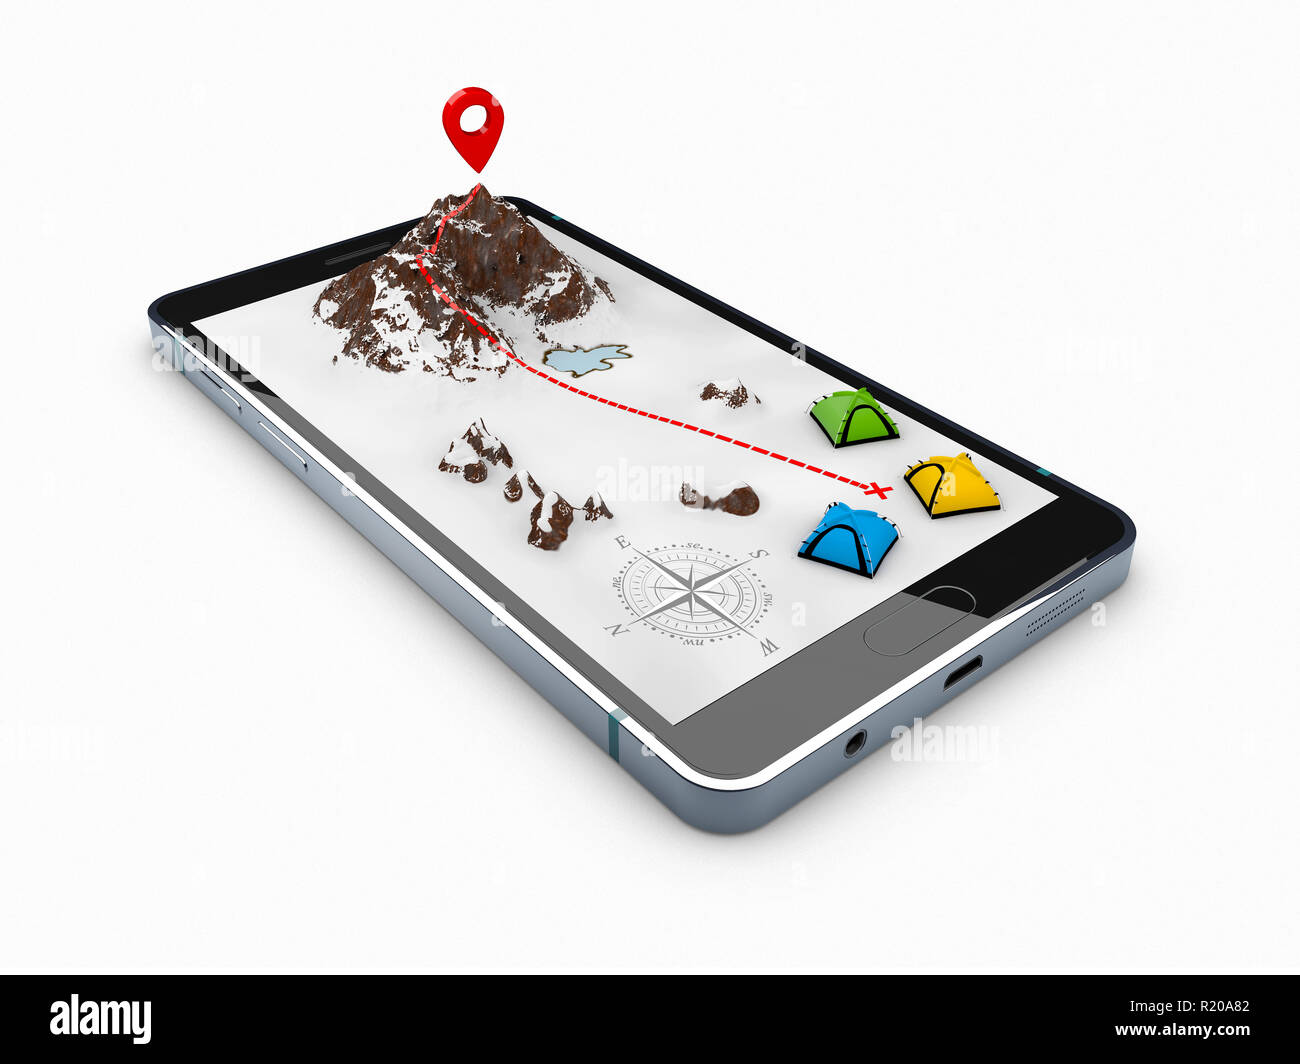 3d illustration of smartphone with mobile navigation app on screen. Route map with symbols. - Stock Image